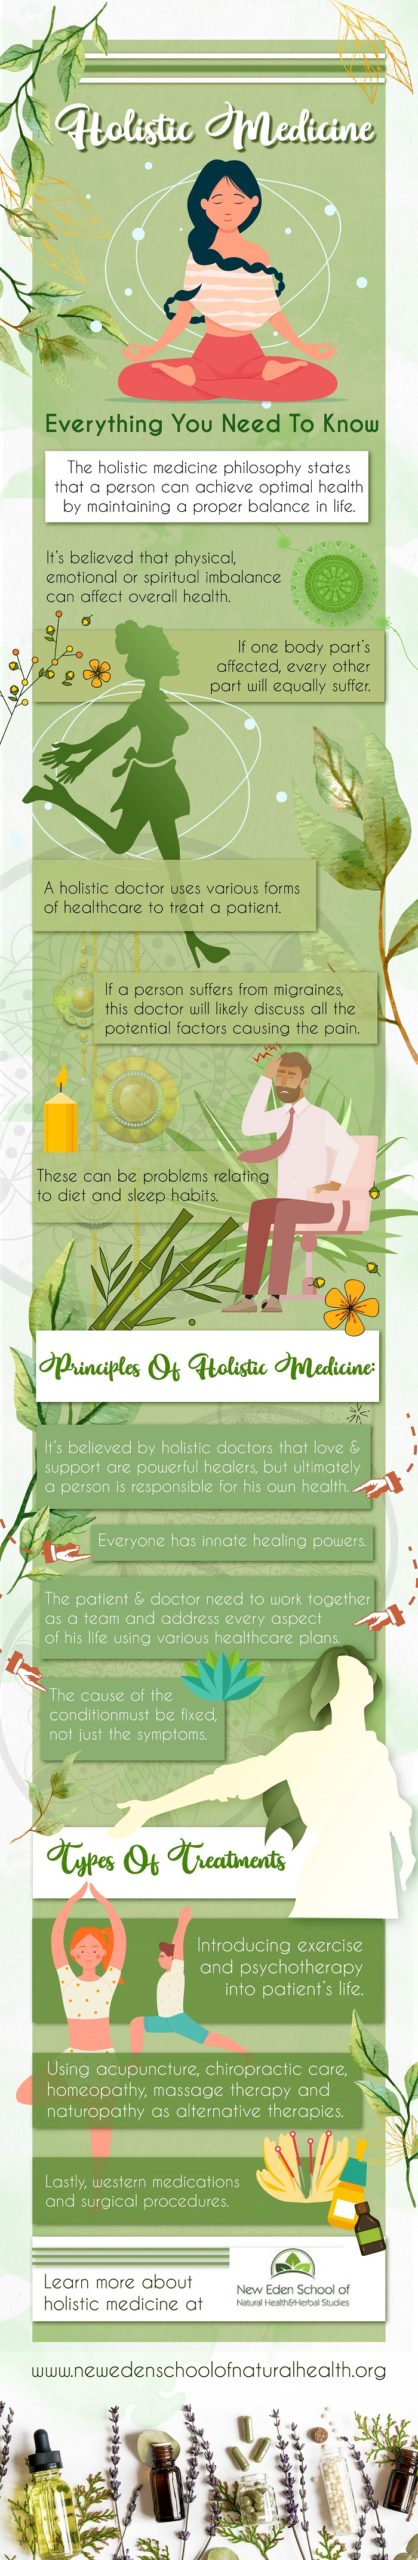 Holistic Medicine - Everything You Need to Know